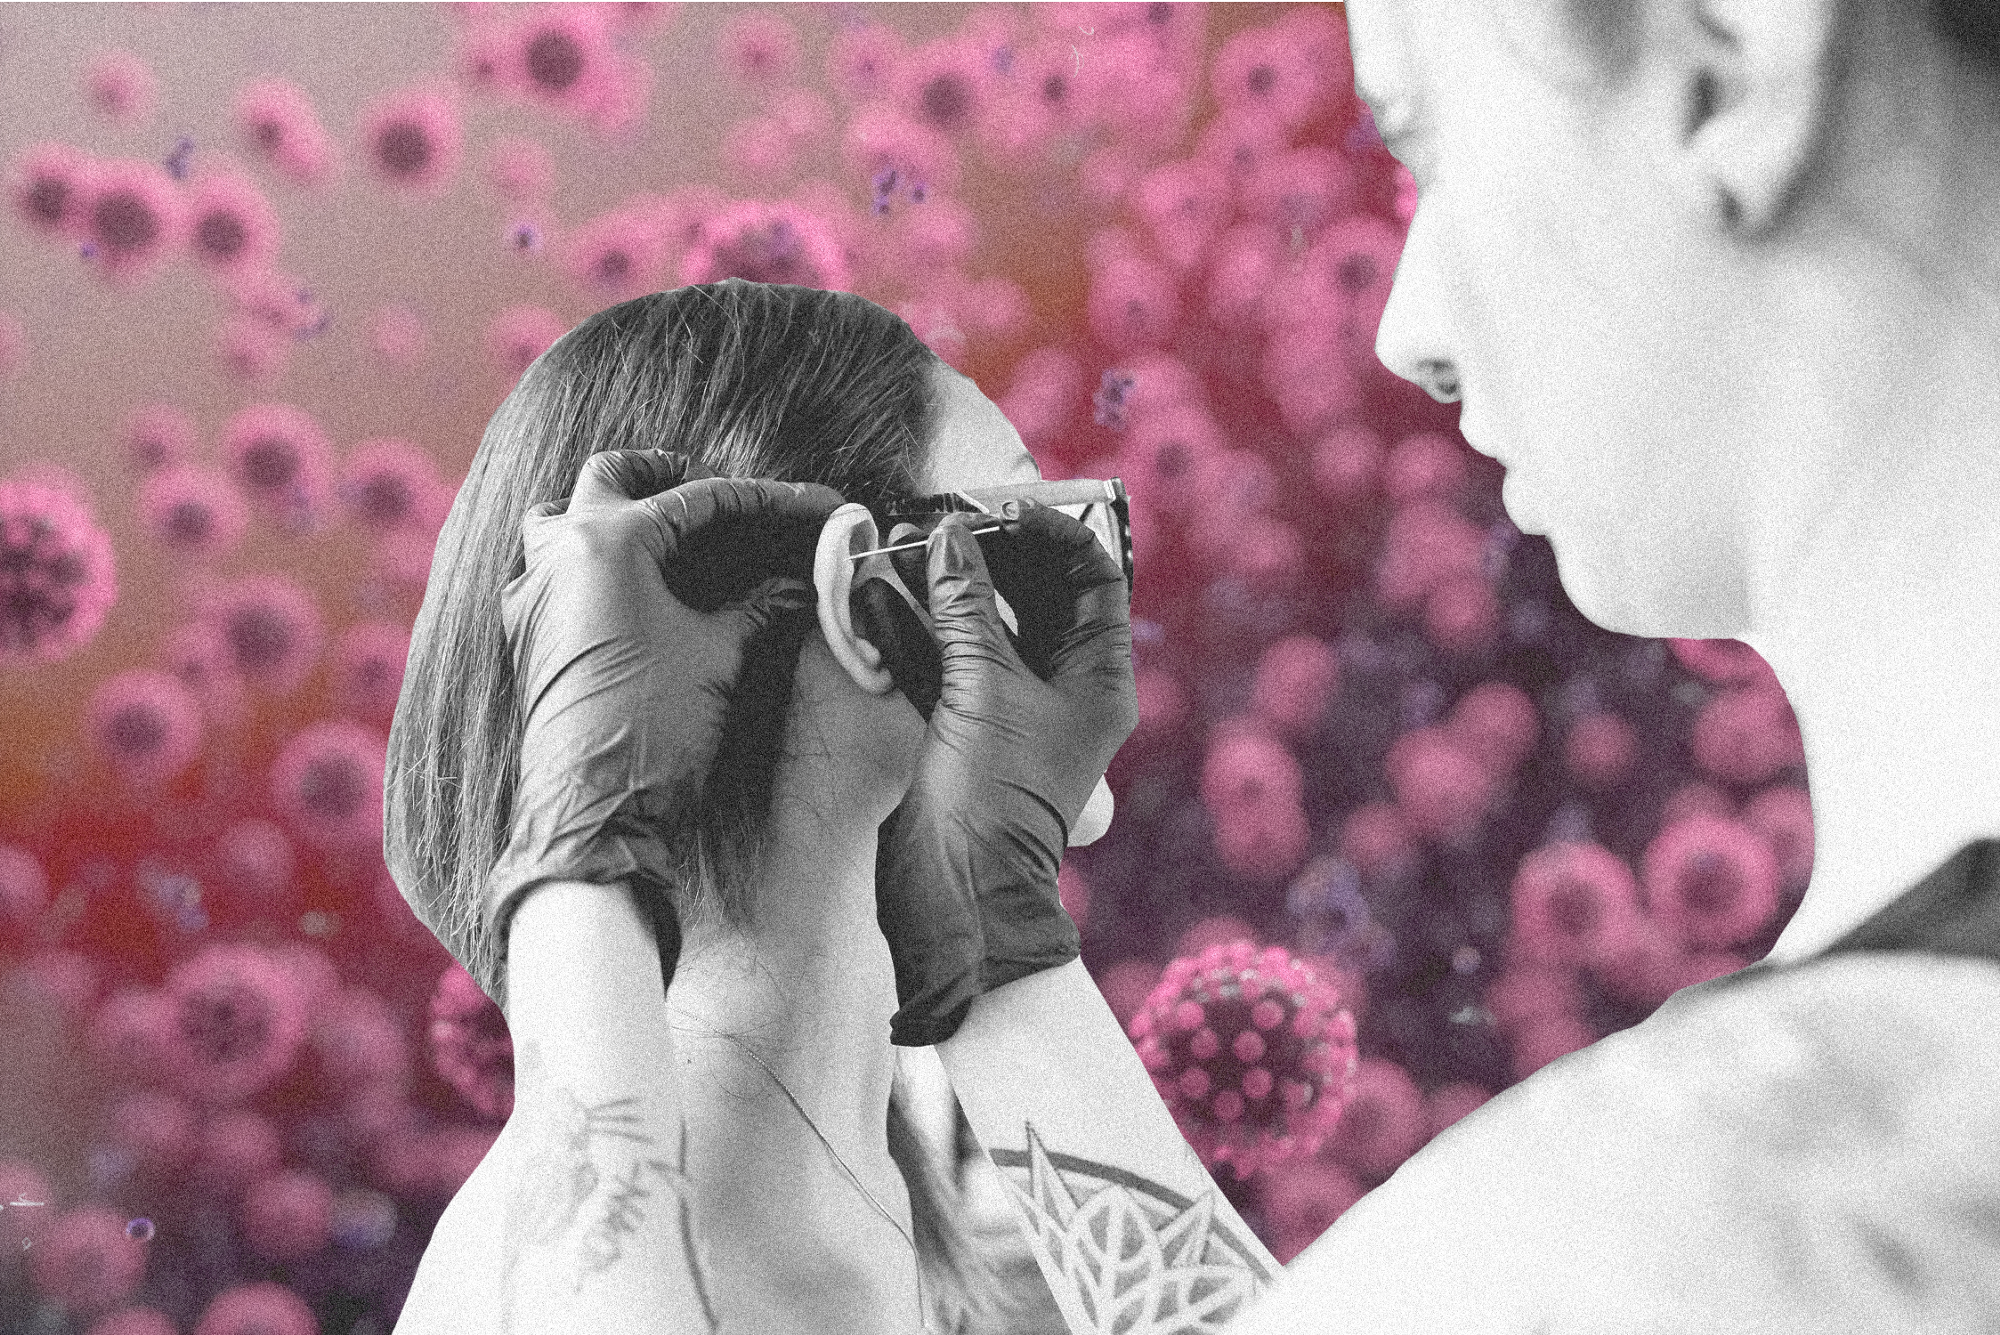 A photo illustration of a woman getting her cartilage pierced by a professional piercer against a backdrop of Coronavirus.